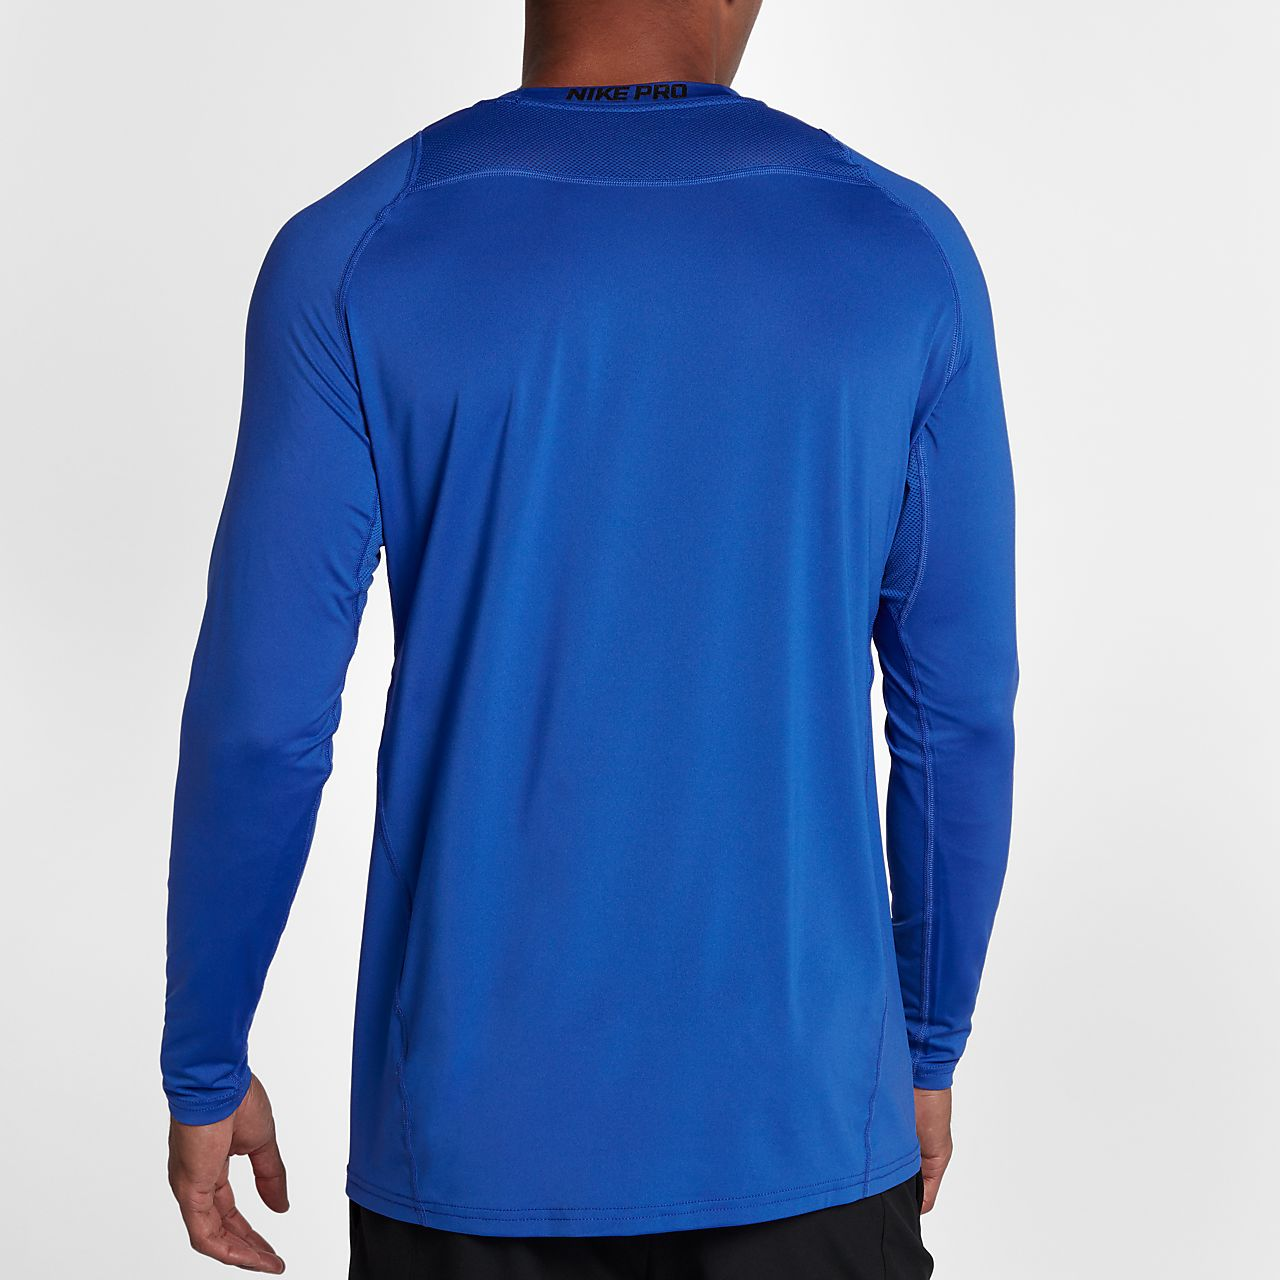 36ef576d Nike Pro Men's Long-Sleeve Fitted Top. Nike.com